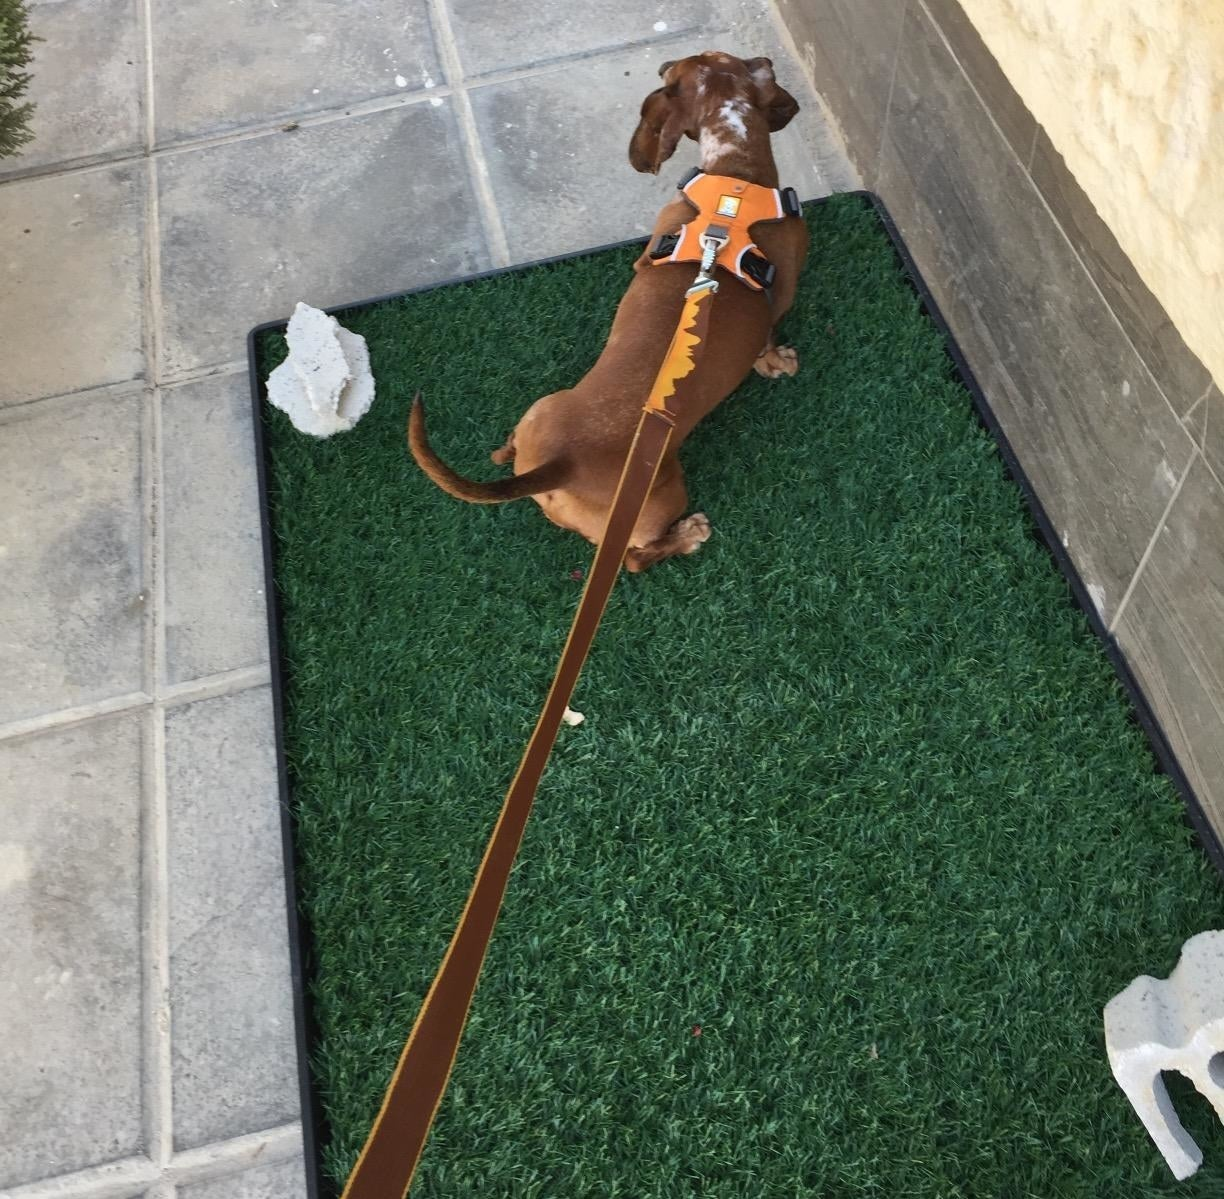 Reviewer showing their dog on the turf mat